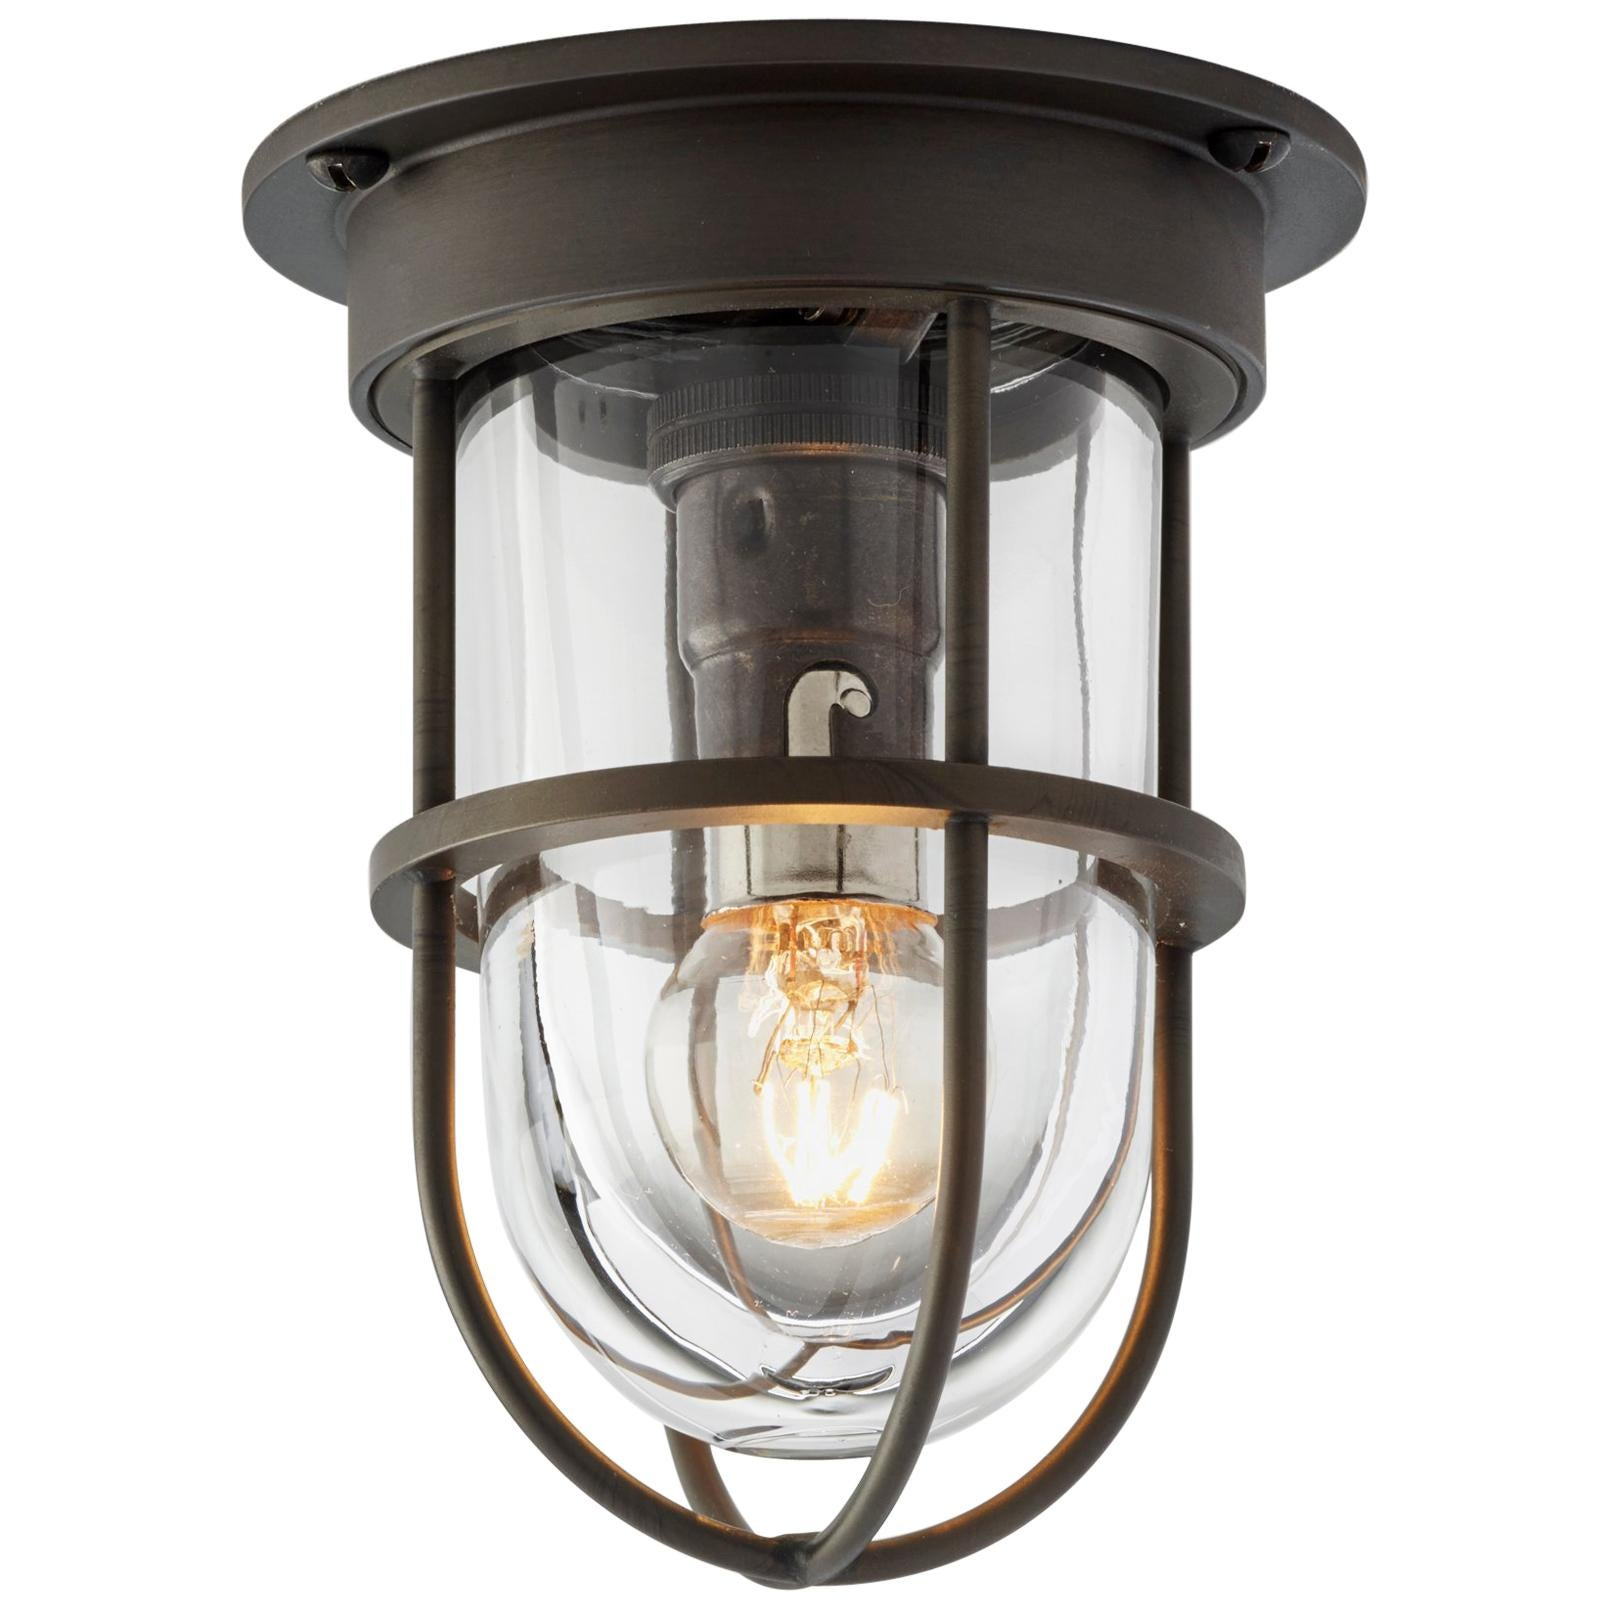 Tekna Bounty 230V LED Ceiling Light with Dark Bronze Finish and Clear Glass